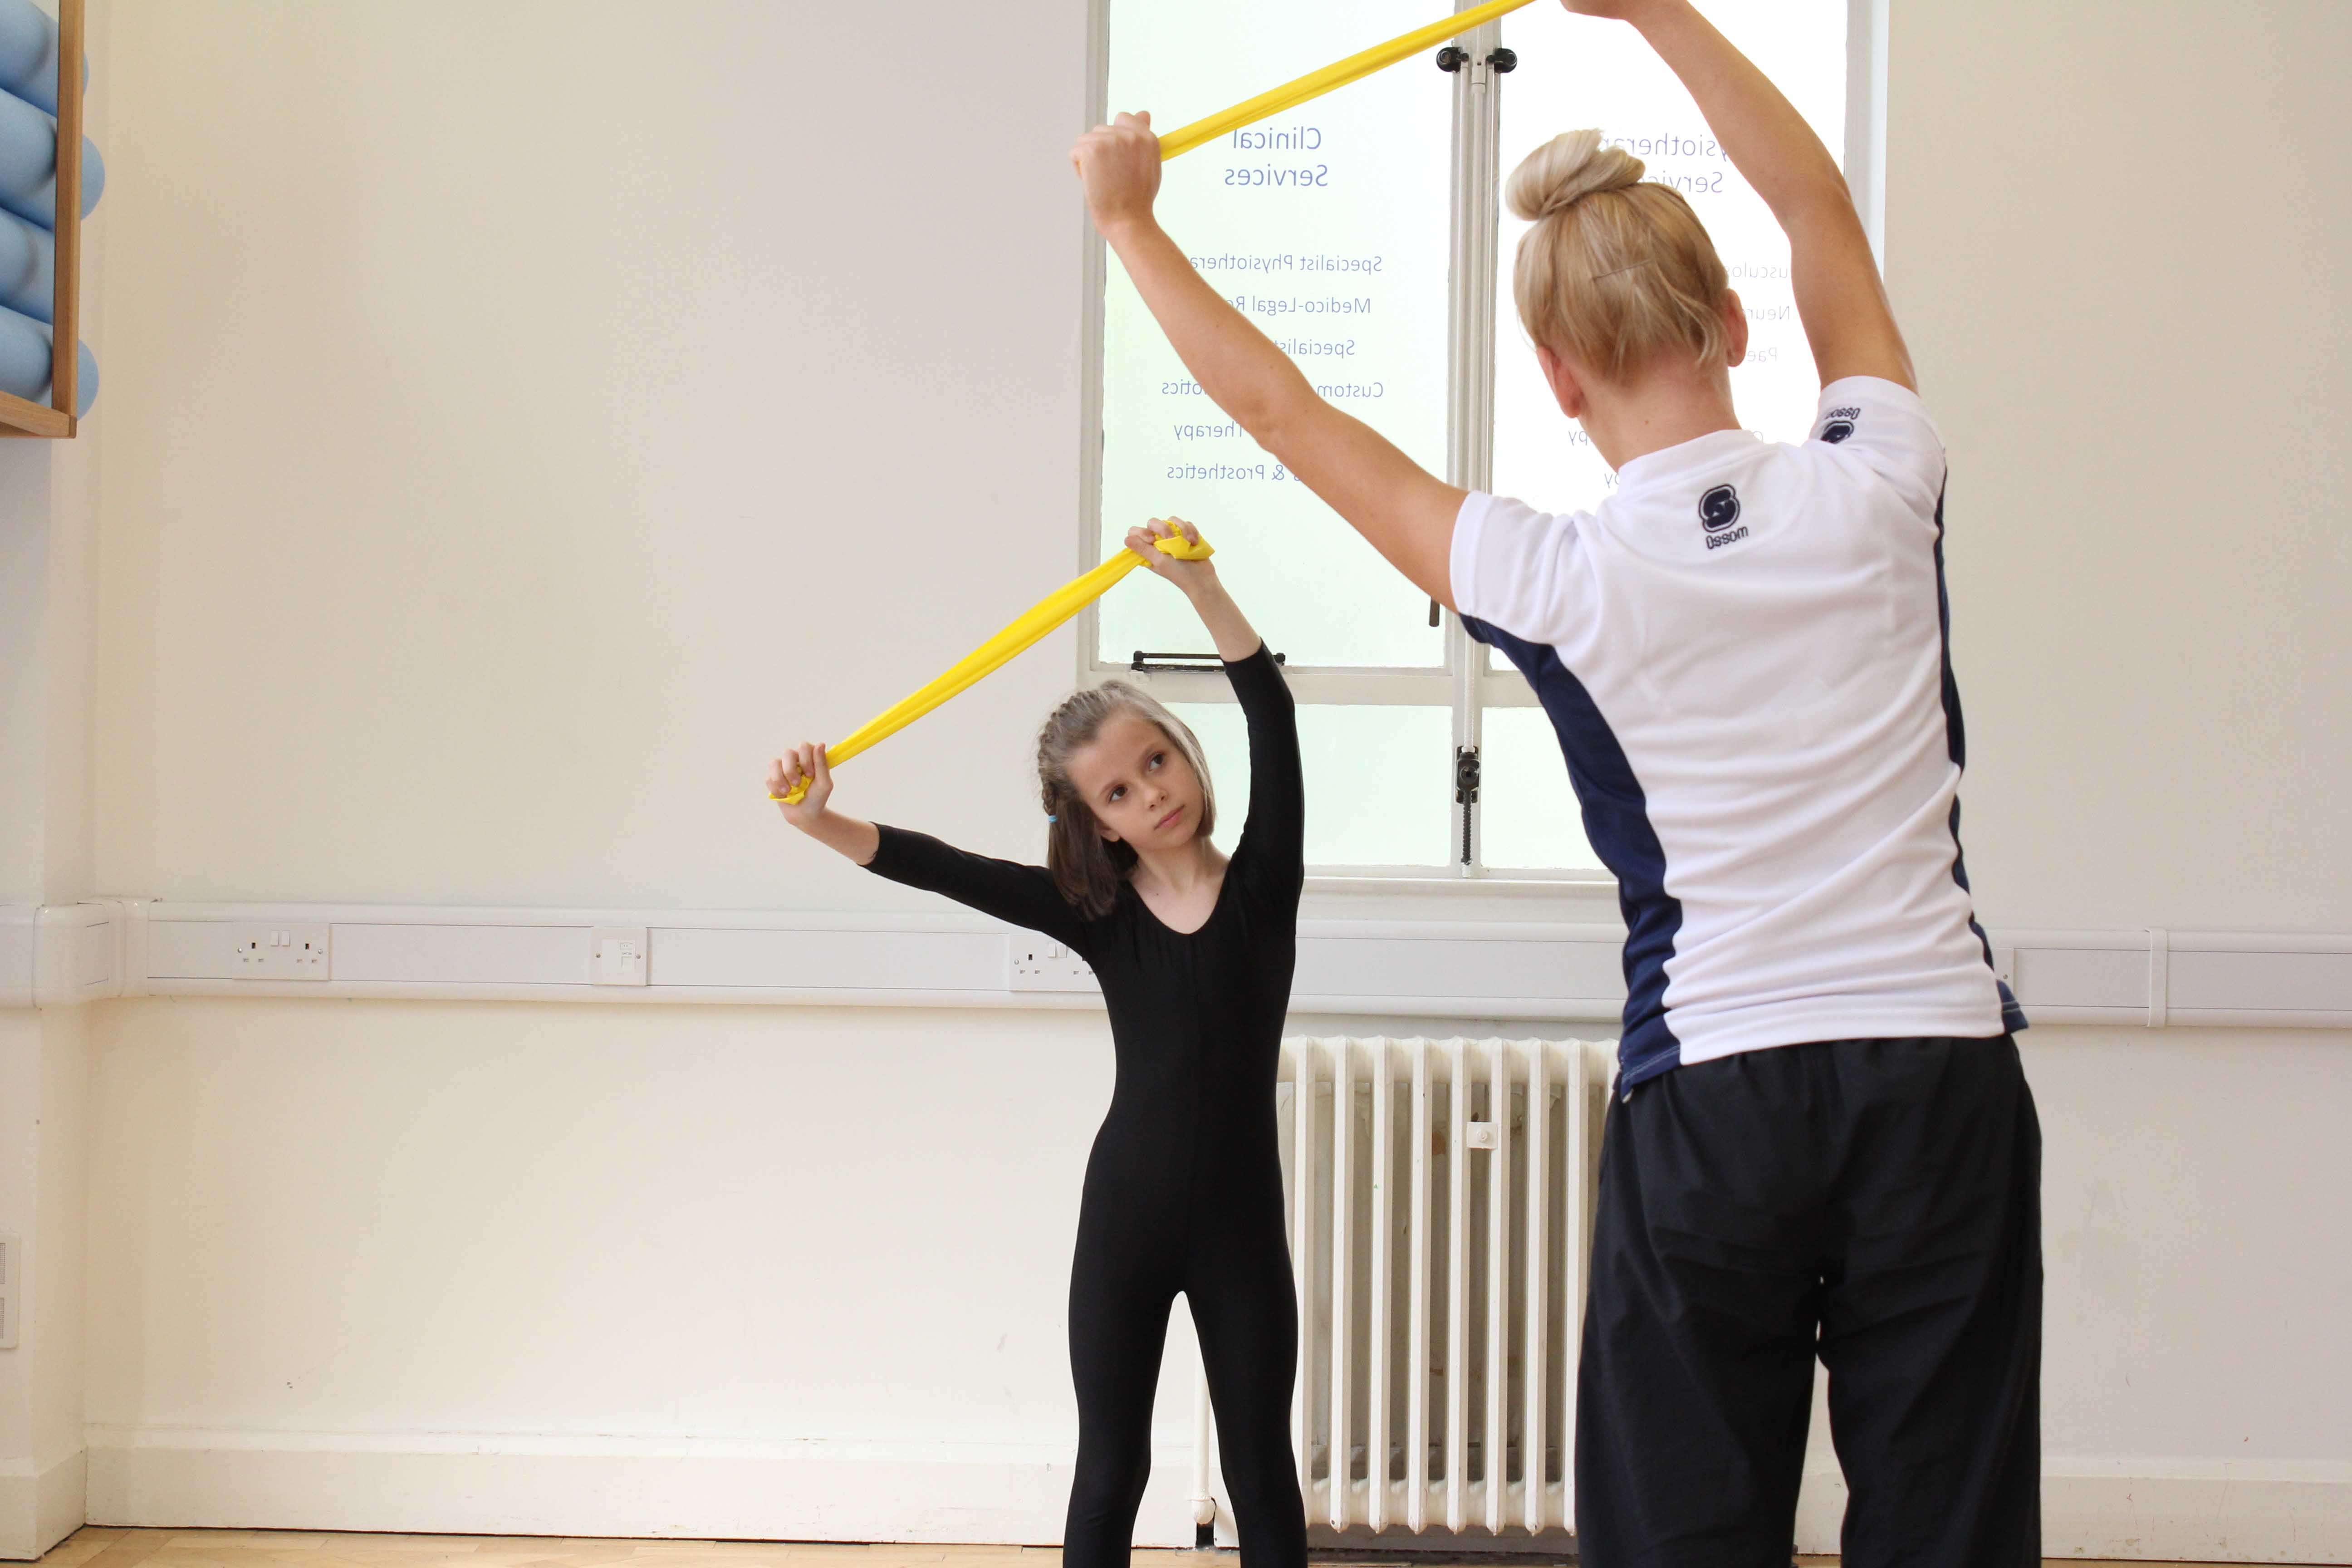 IMproving respiratory function and exercise tolerance through directed play